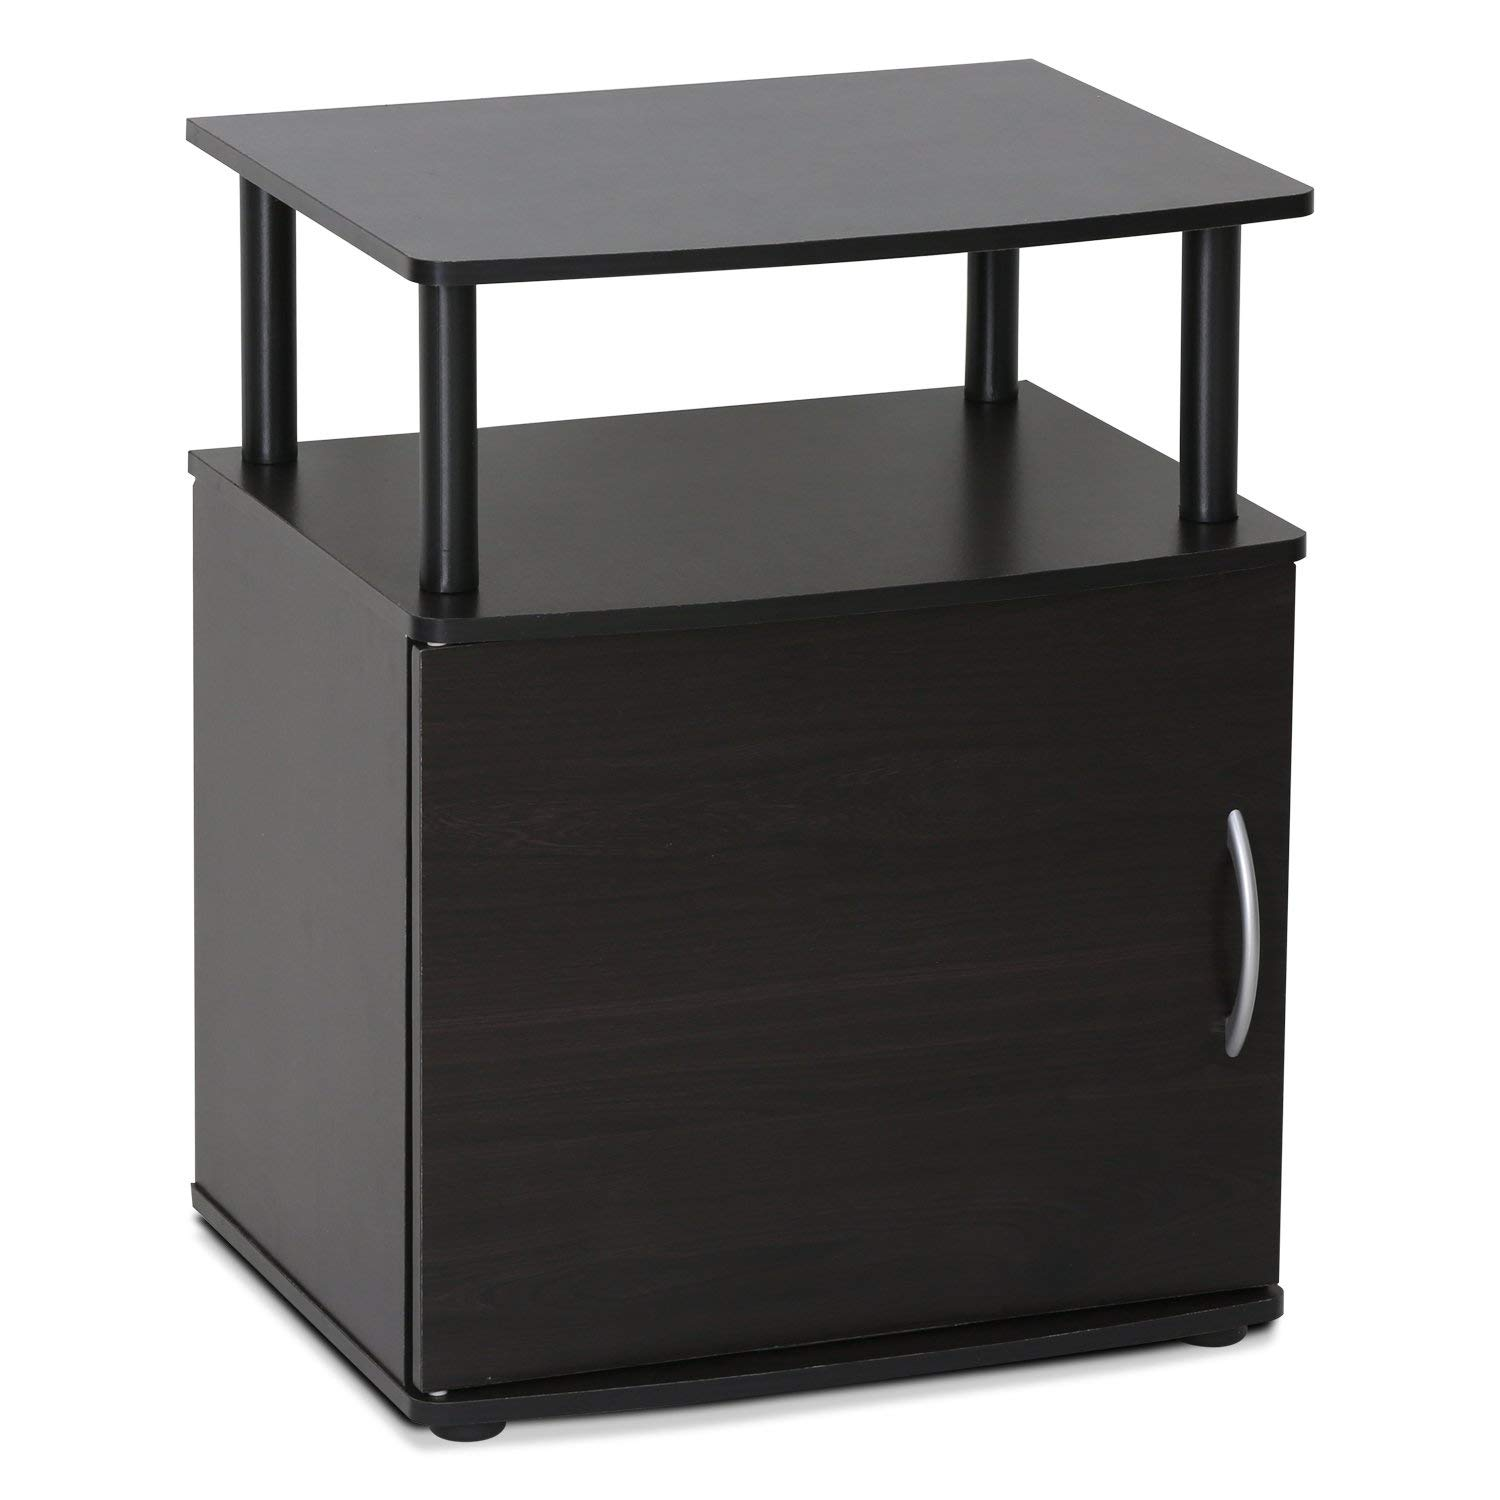 Furinno 15114BKW Jaya End Table, Black Wood